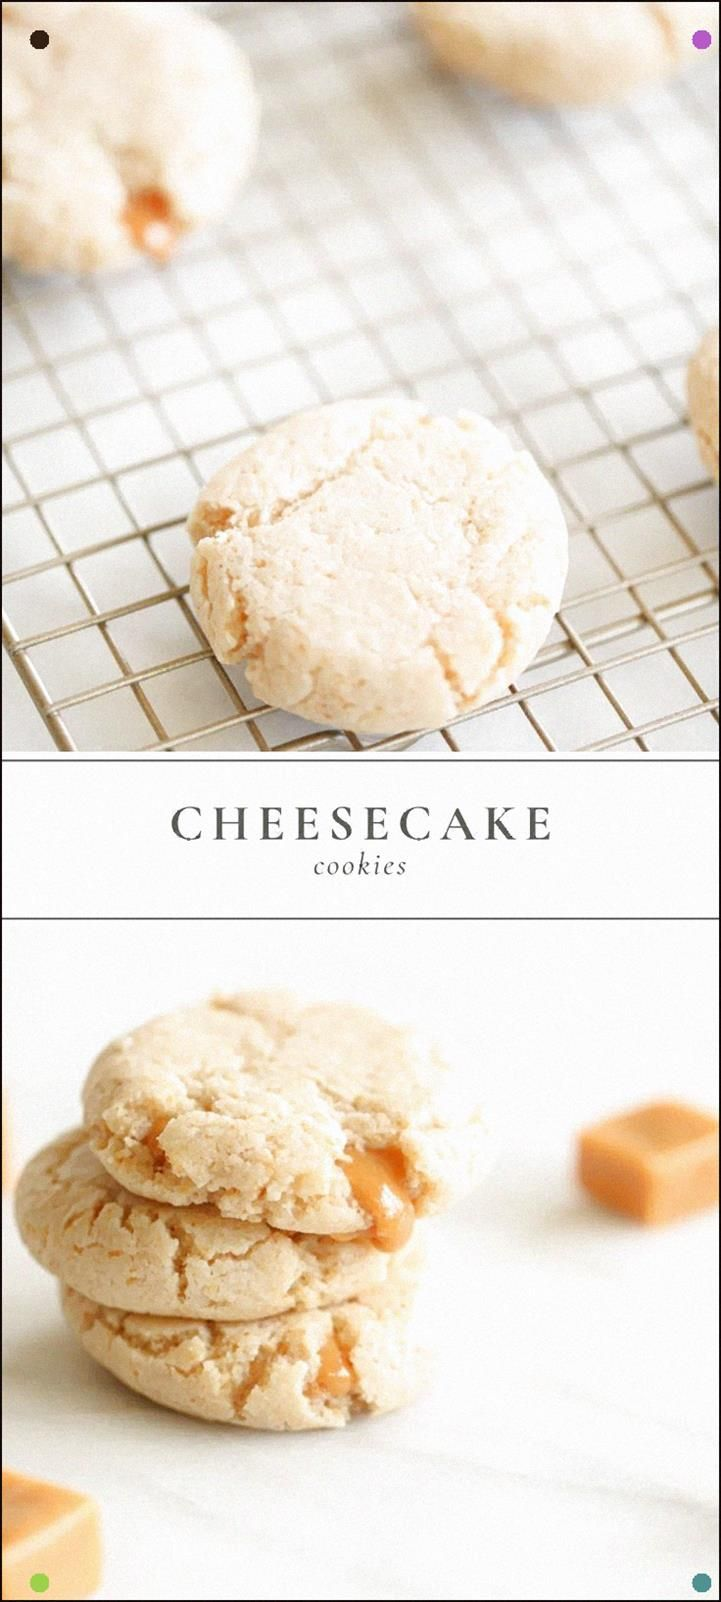 These Gooey Cheesecake Cookies With Caramel Are Everything You Need In Your Life Its Just Like A Caramel Cheesecake In BiteSize Pieces Keep Reading For The Must Have Cara...